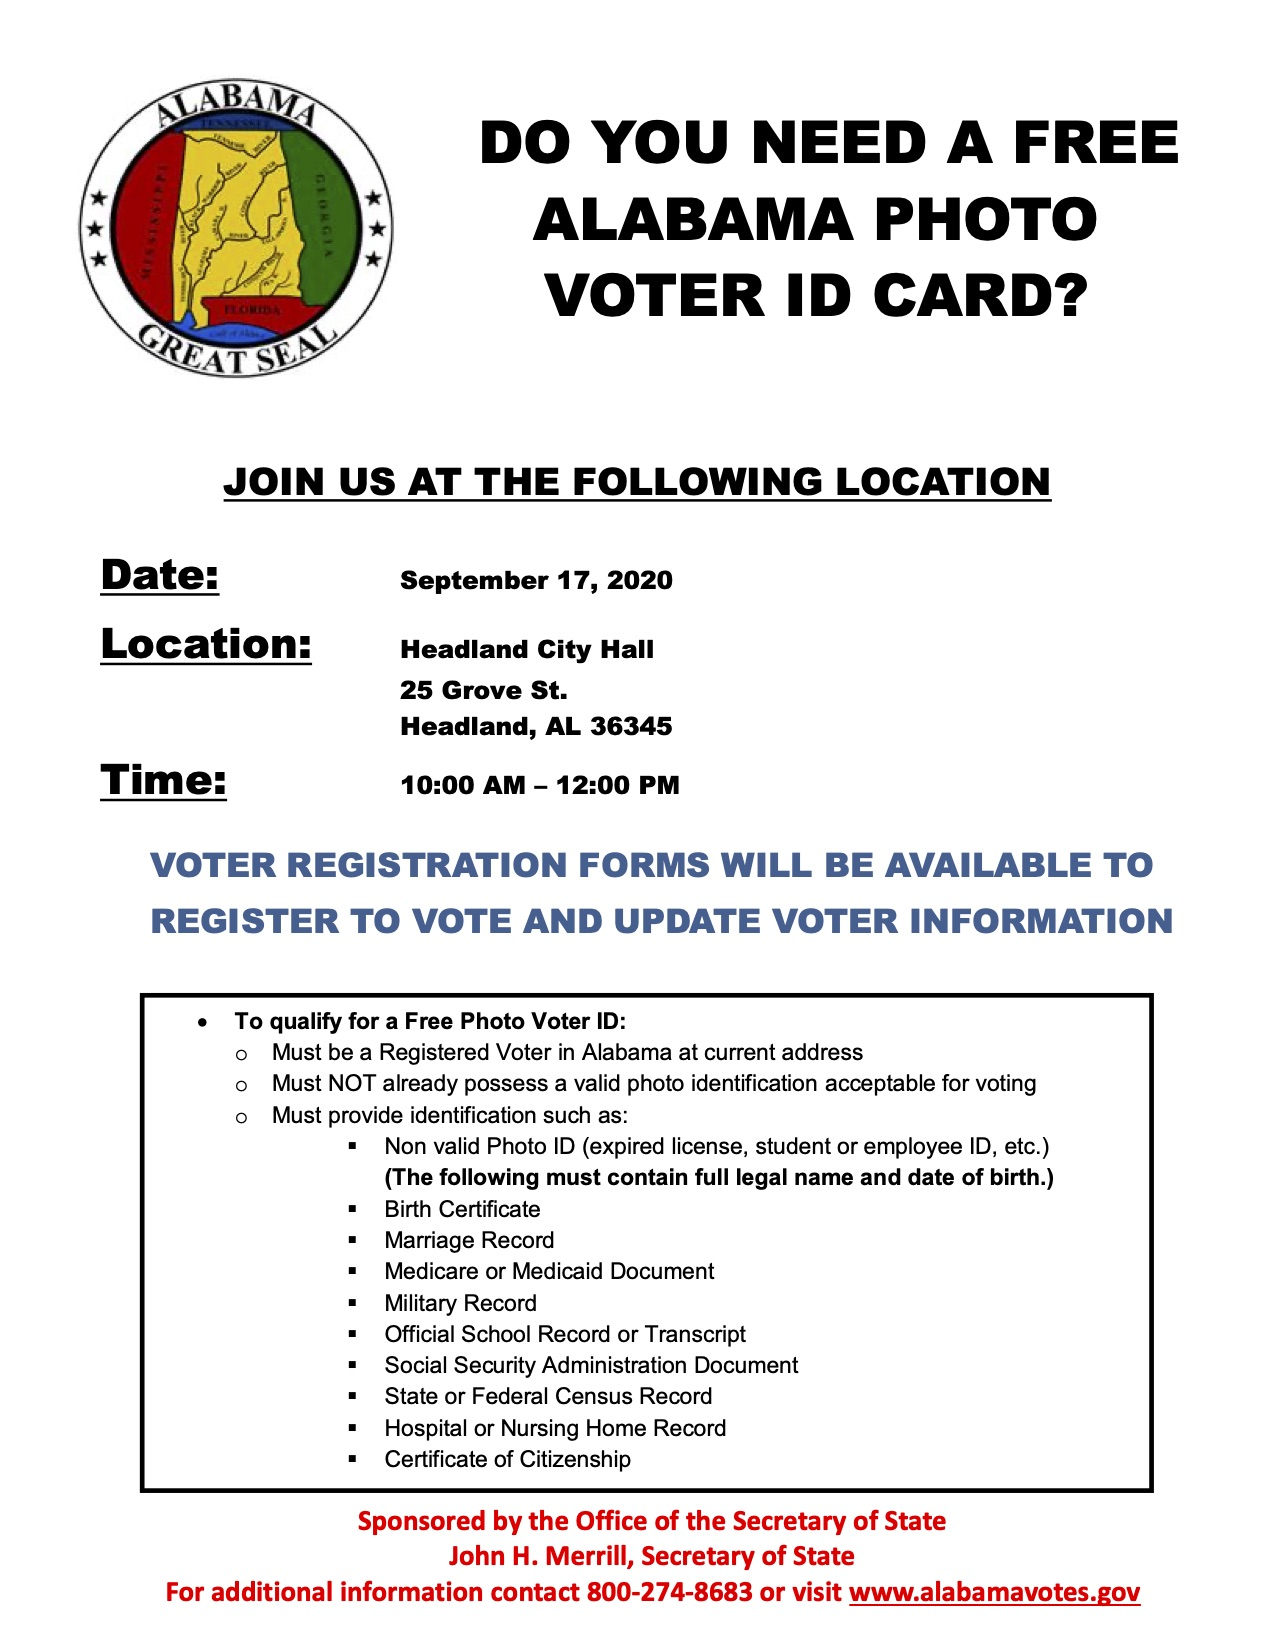 Henry County AL Photo Voter ID Event Flier 9 17 2020